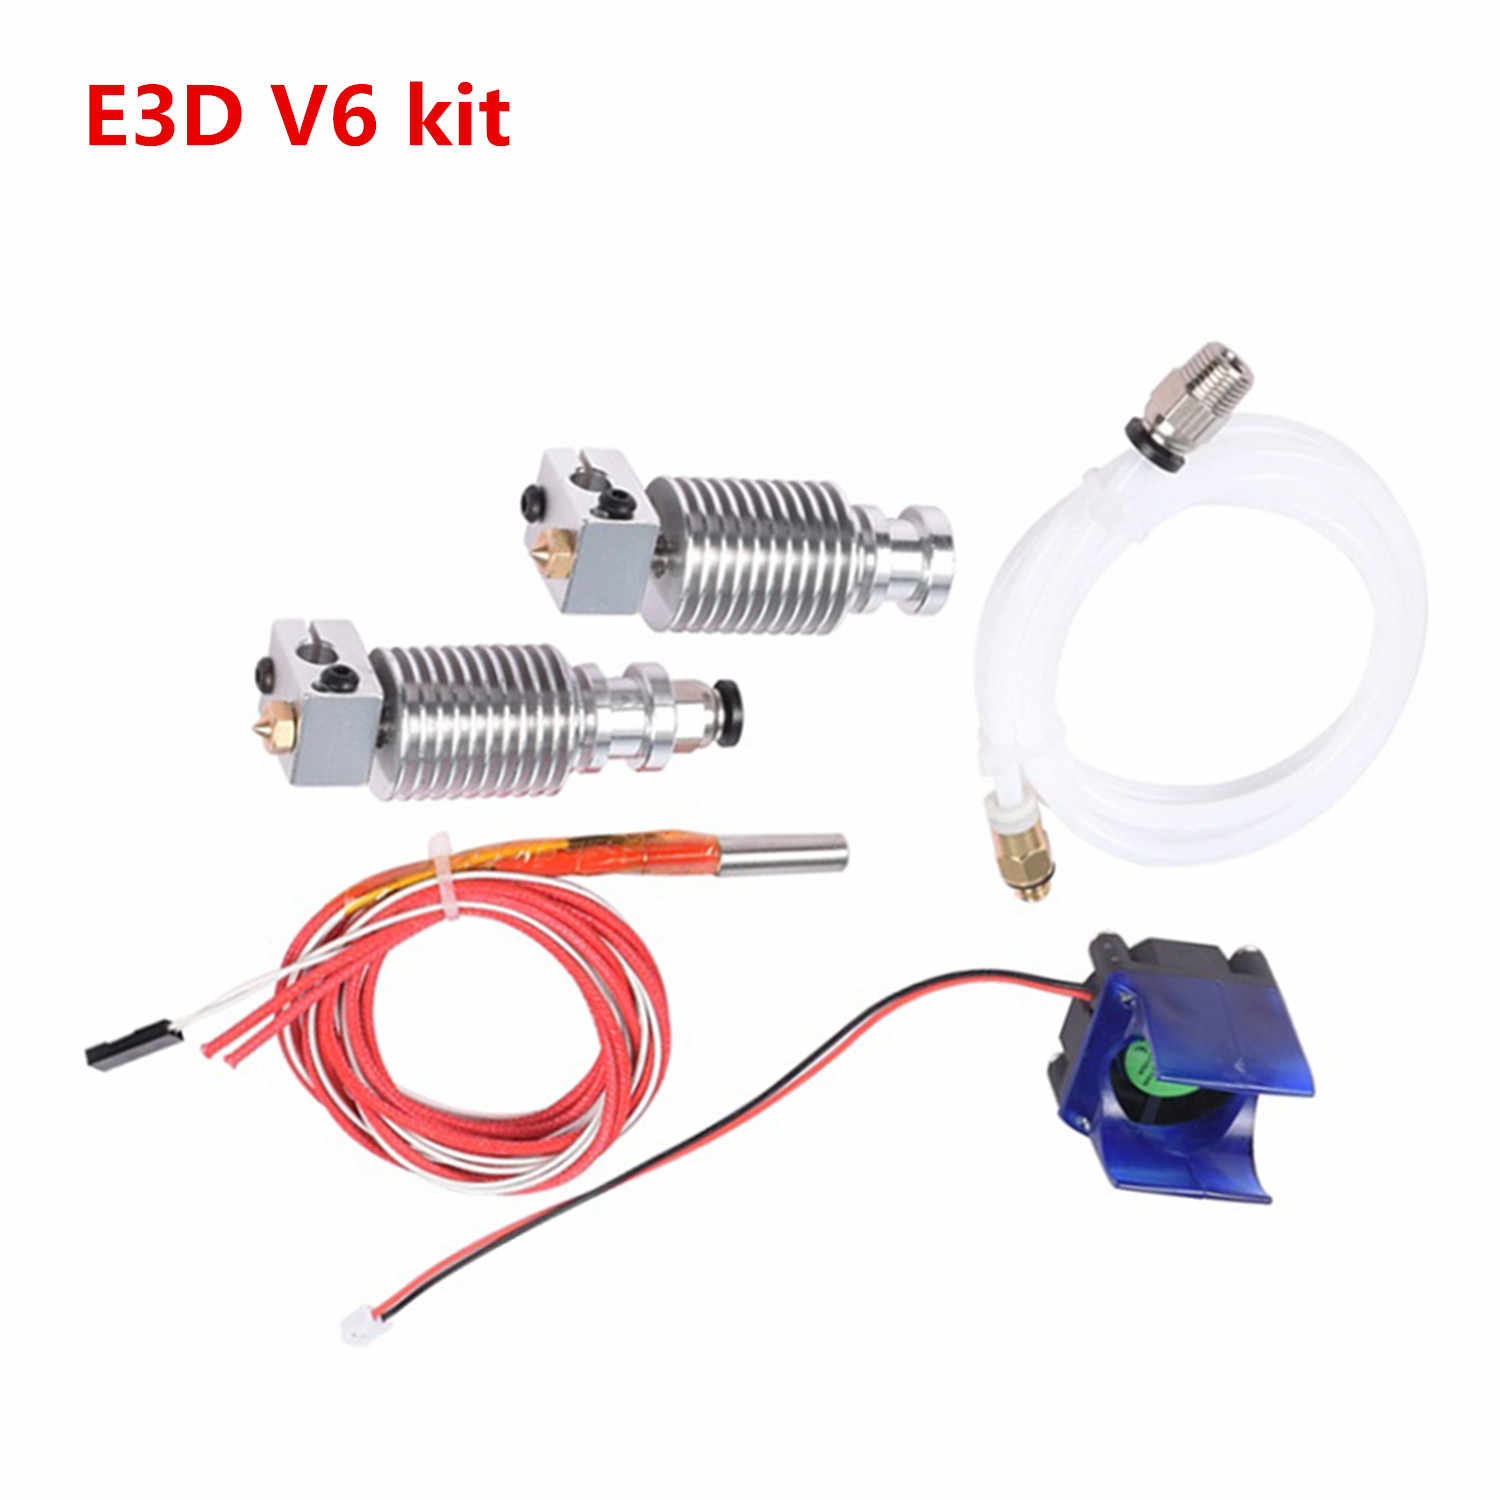 3d Printer Nozzle E3D V6 Extruder Upgrade Kit 1.75 Mm/0.4 Mm Aluminium J-Head Heater Hotend montage Filament Container